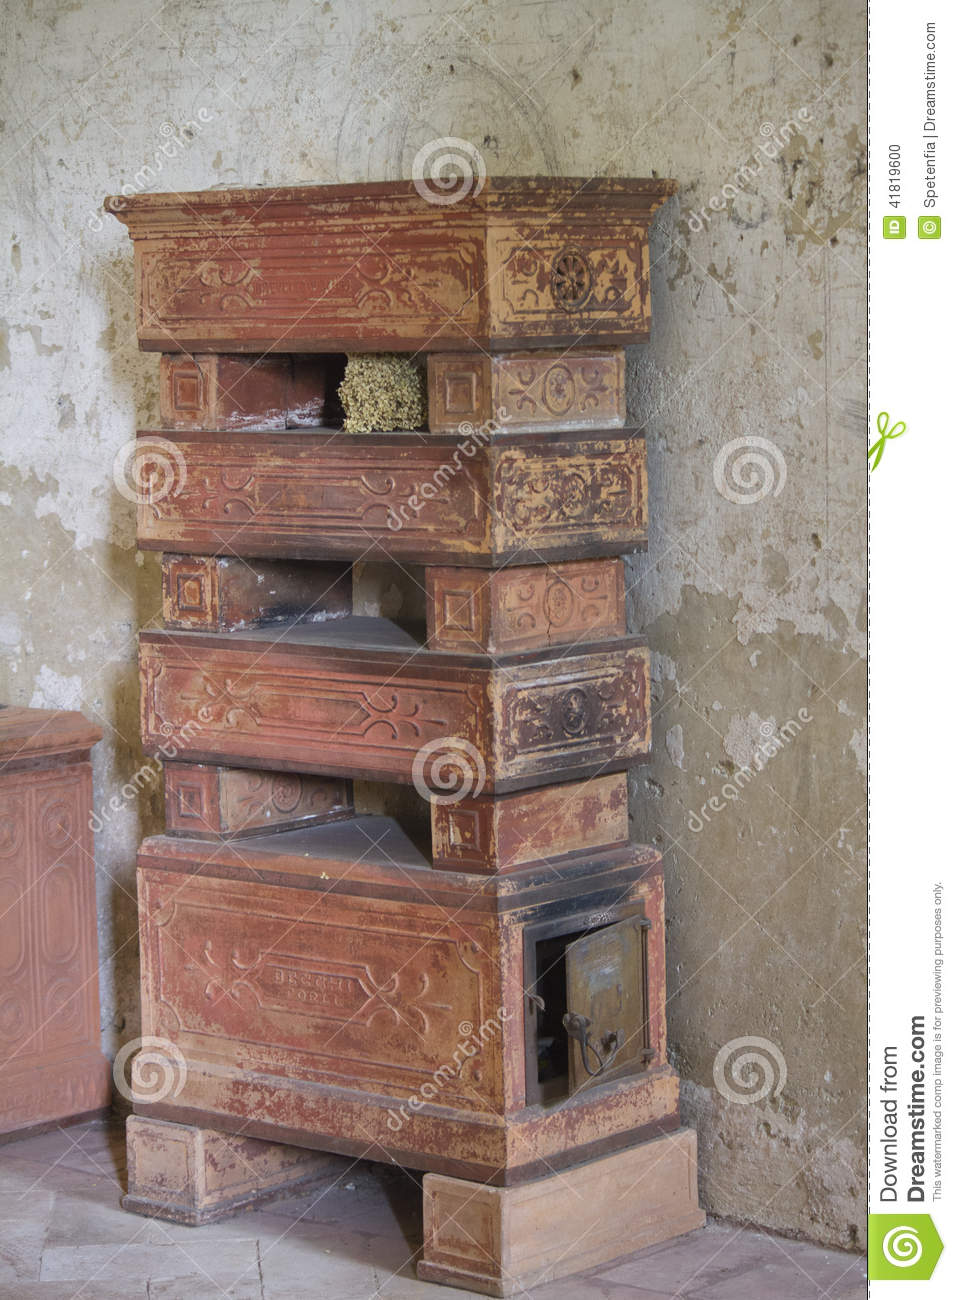 Old Brick Stove Stock Photo Image Of Indoor Interiors